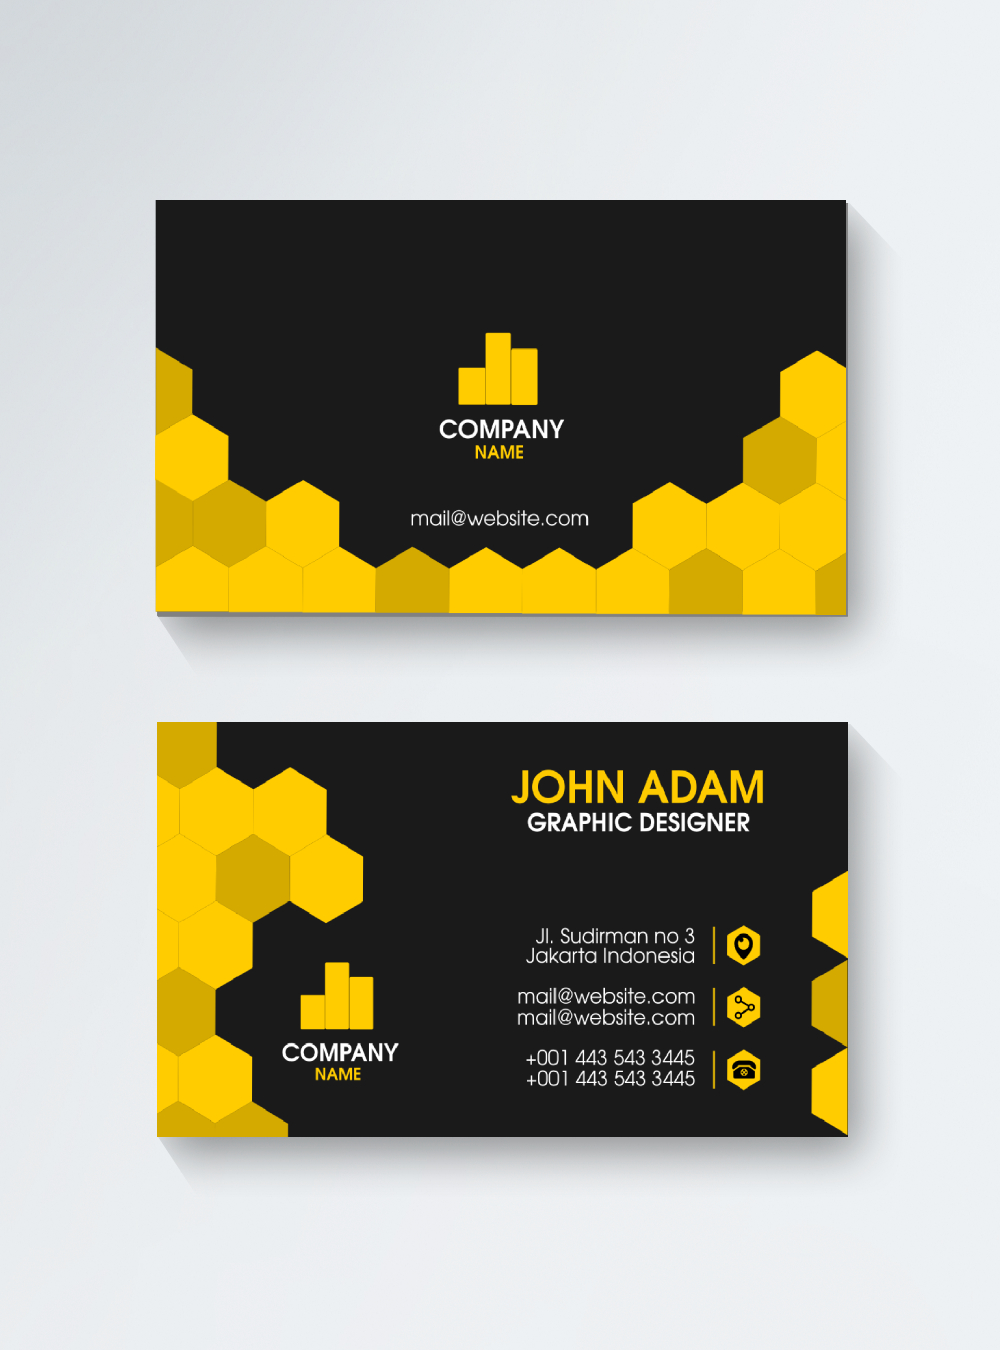 Abstract beehive business card template image_picture free